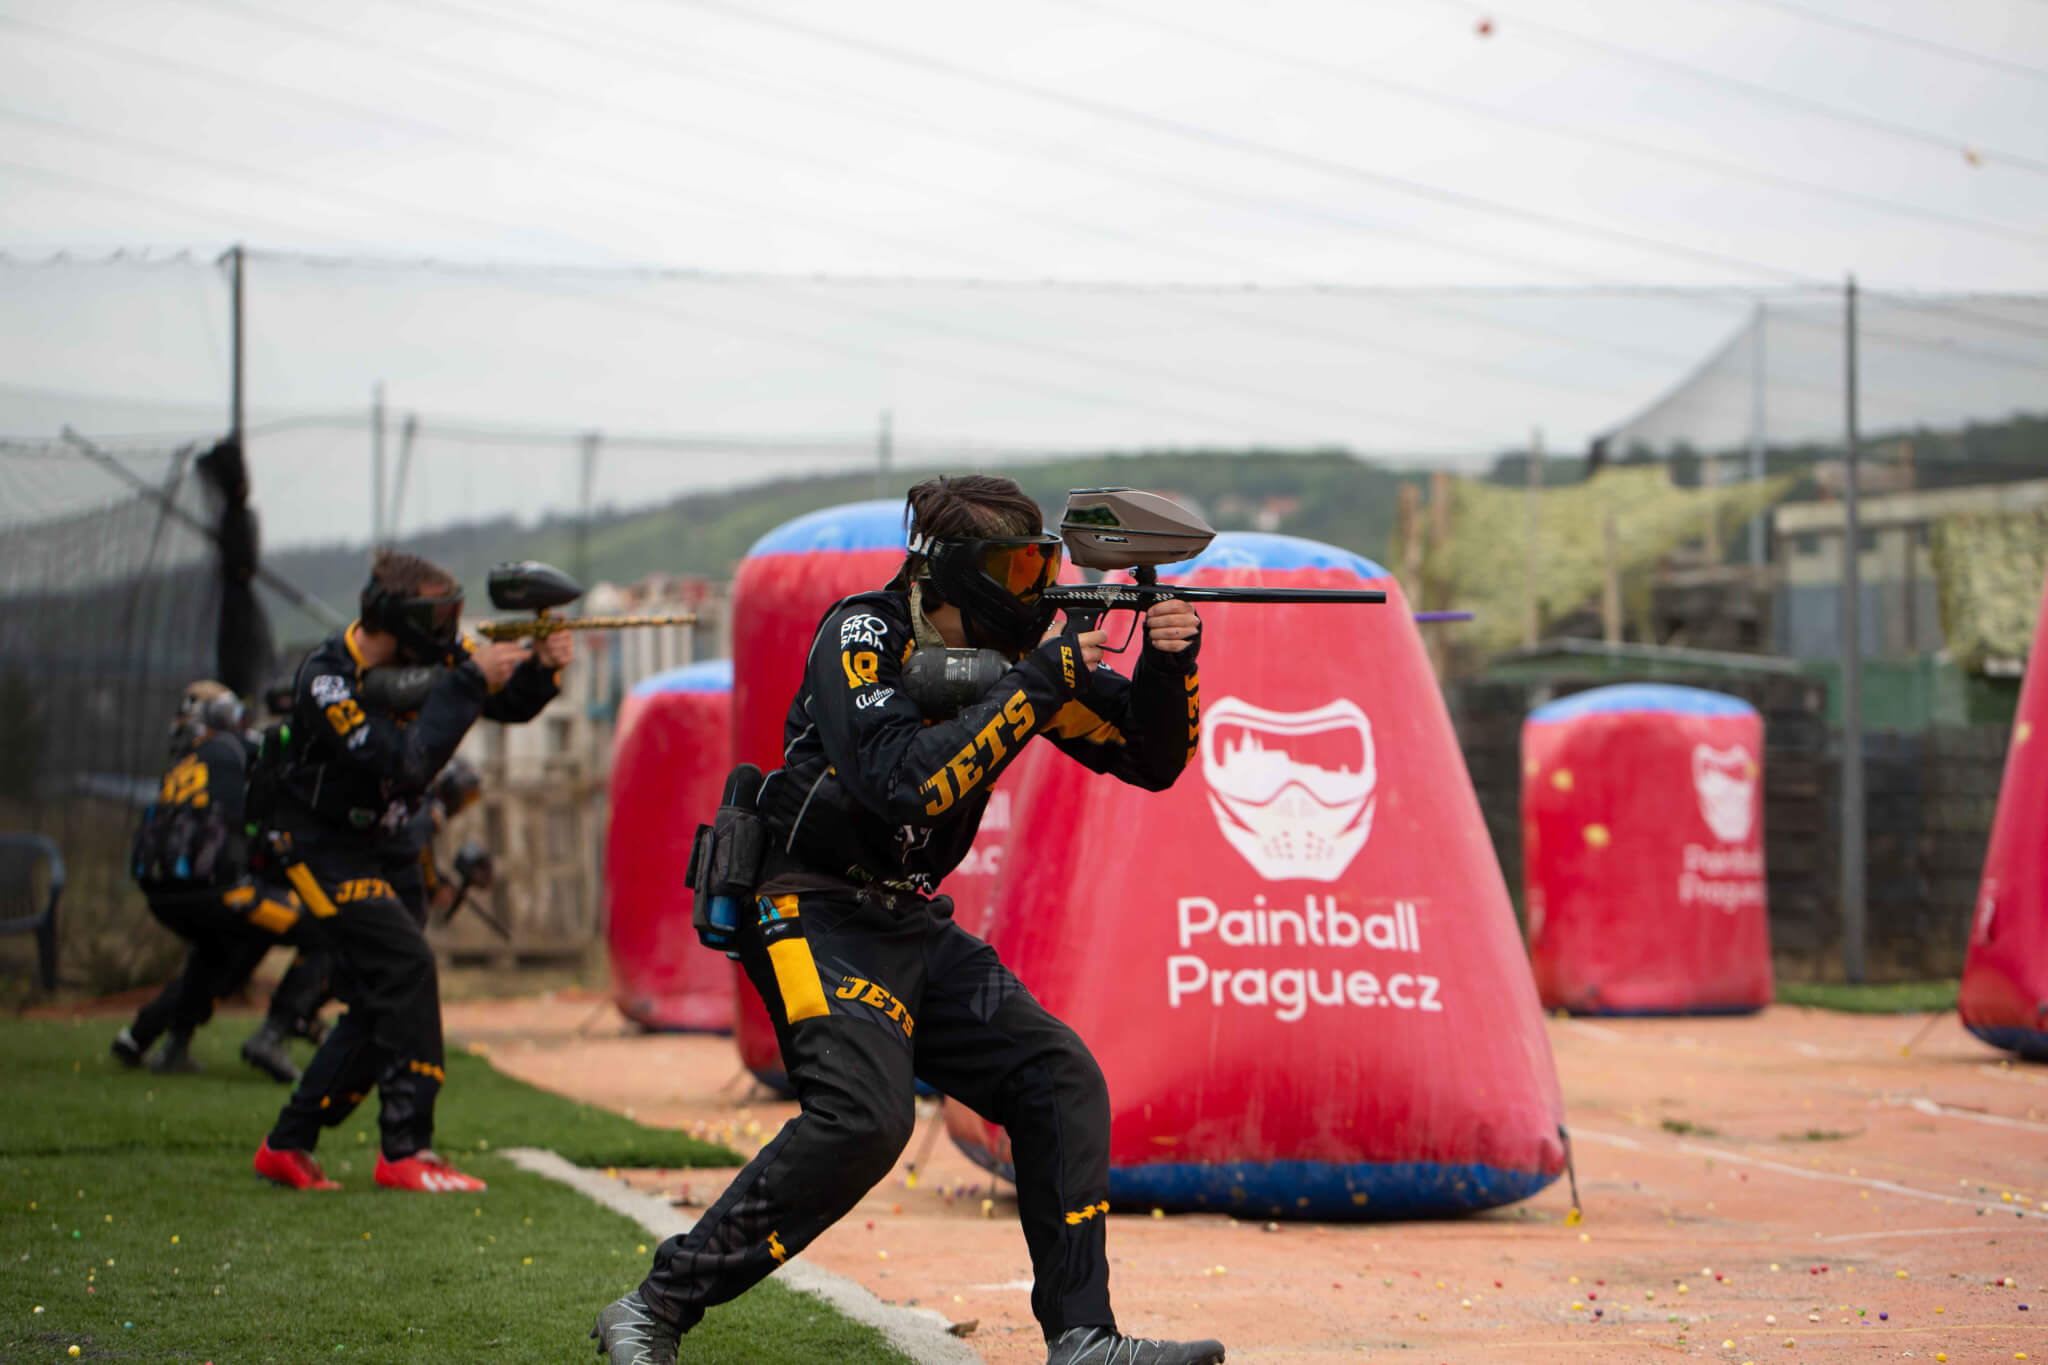 paintball prague sport outdoor playground